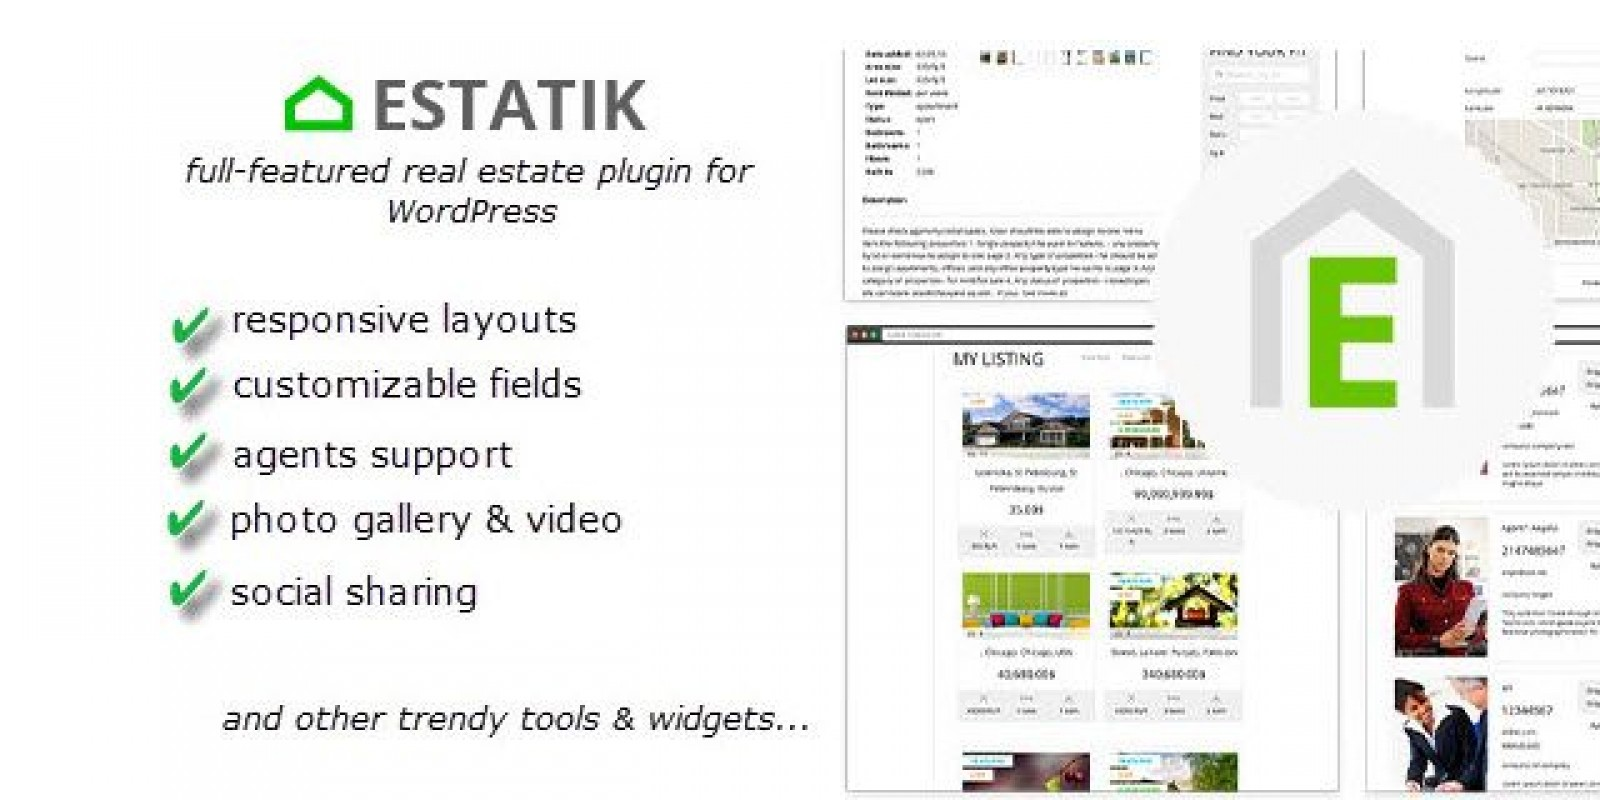 Estatik - Real Estate Plugin For Wordpress